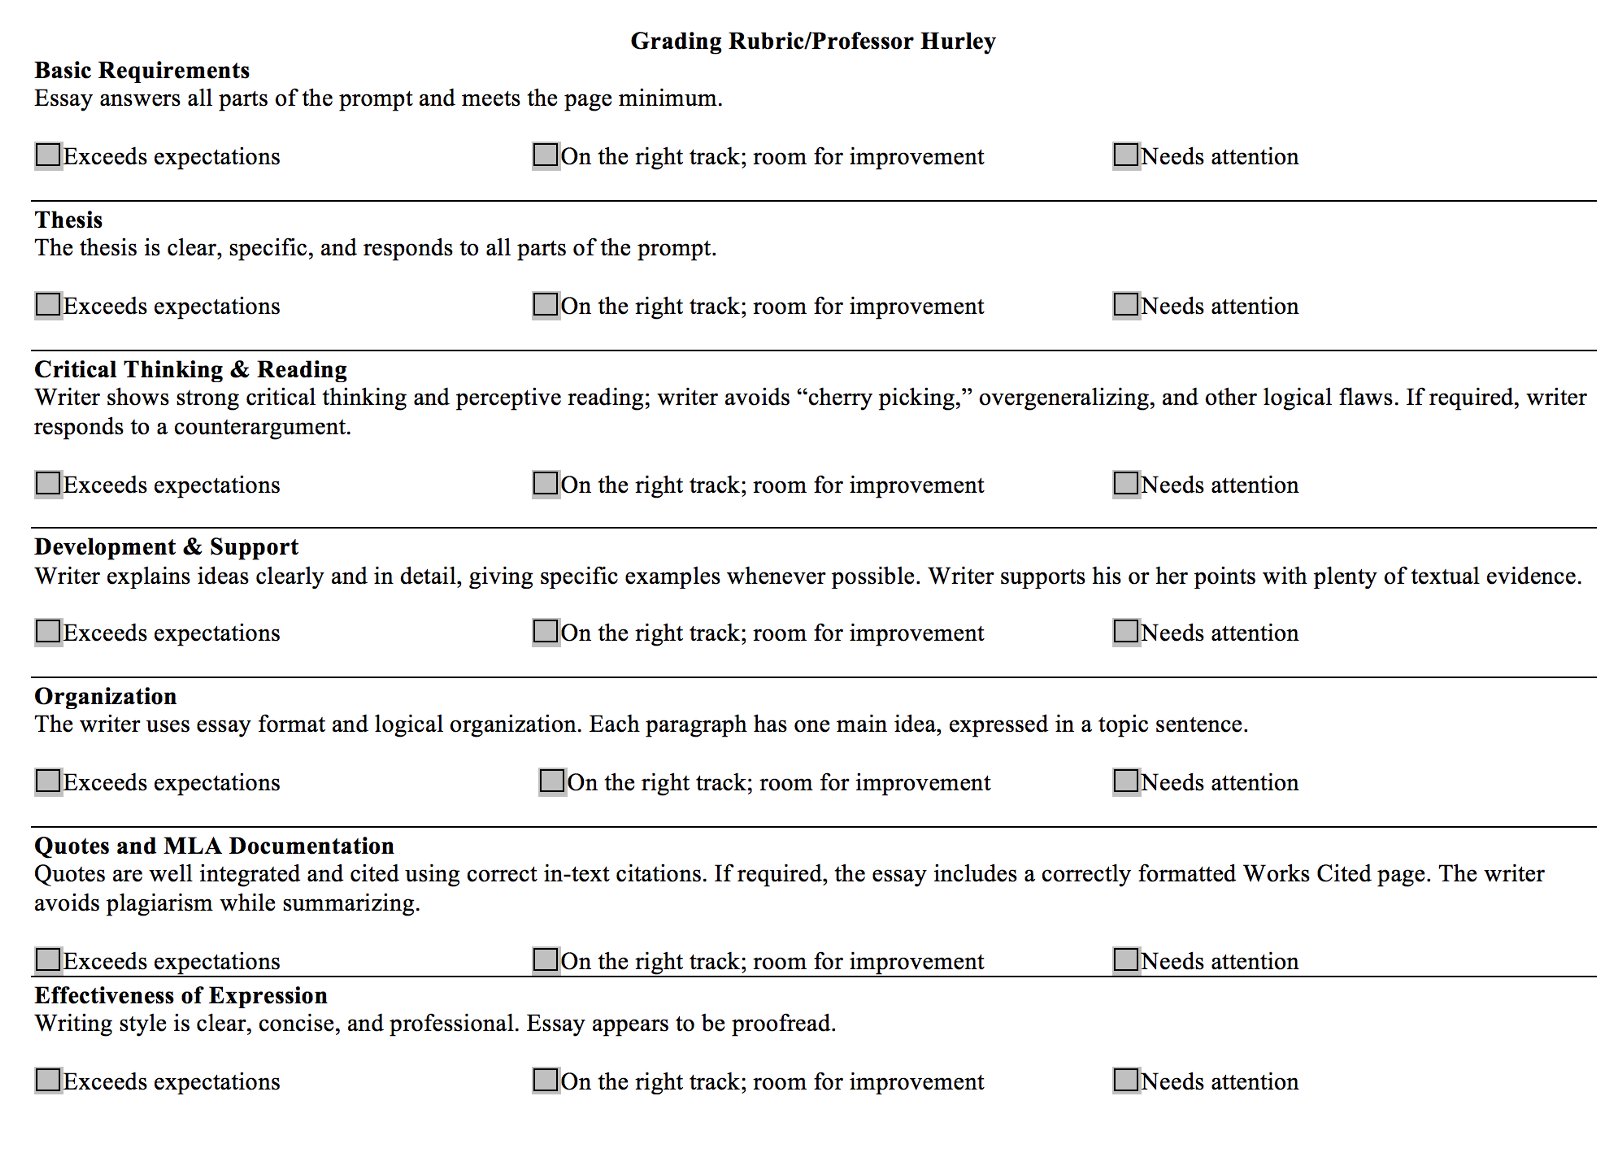 Why I Threw Away My Rubrics  Bullshitist I Think Its Pretty Good I Put A Lot Of Thought Into What I Wanted To See  In My Students Writing And I Took Care To Explain Each Category In A Way